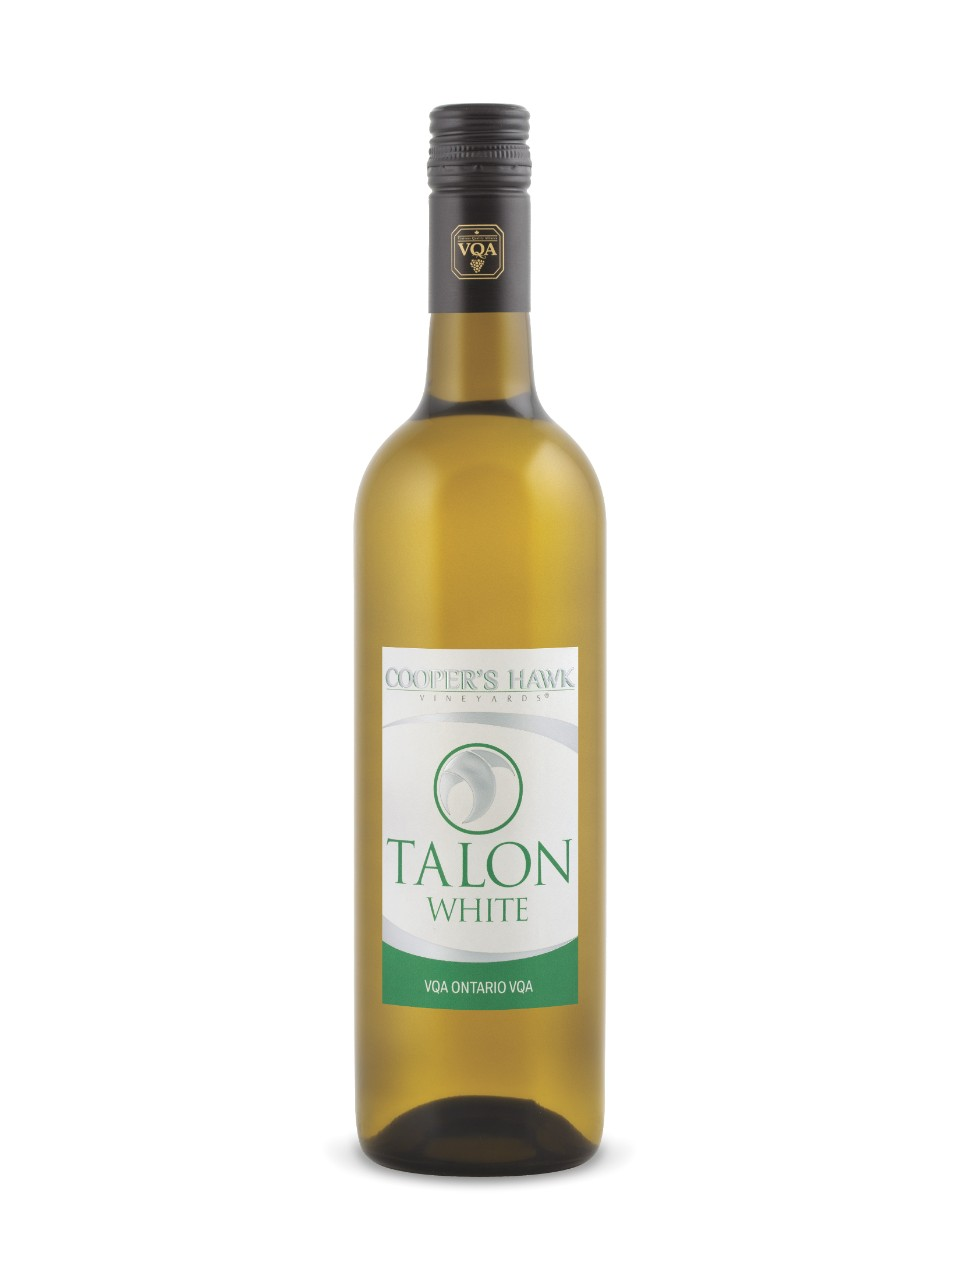 Image for Cooper's Hawk Talon White 2013 from LCBO